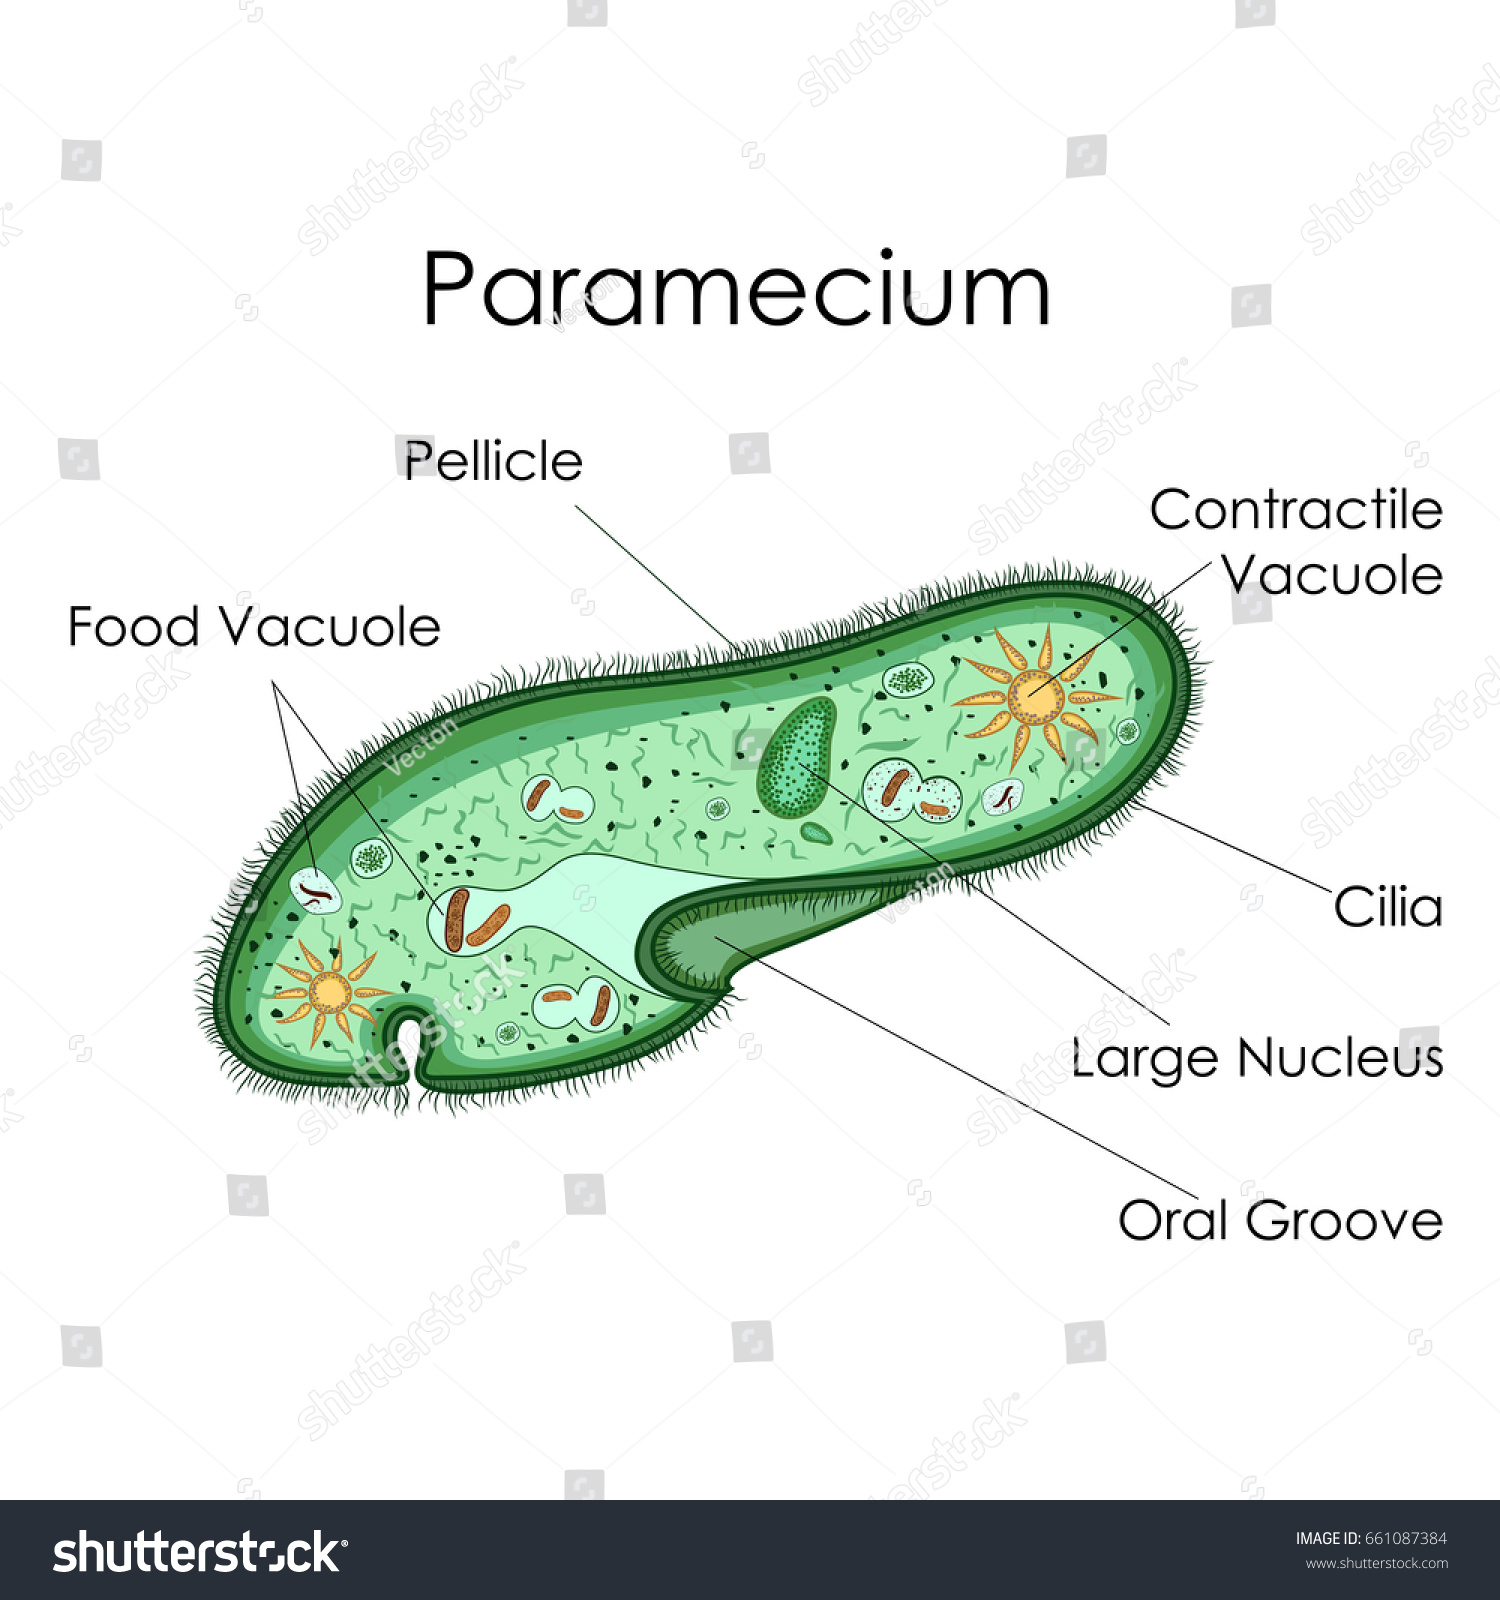 euglena cell diagram with labels 2001 nissan pathfinder bose radio wiring education chart biology paramecium vector stock